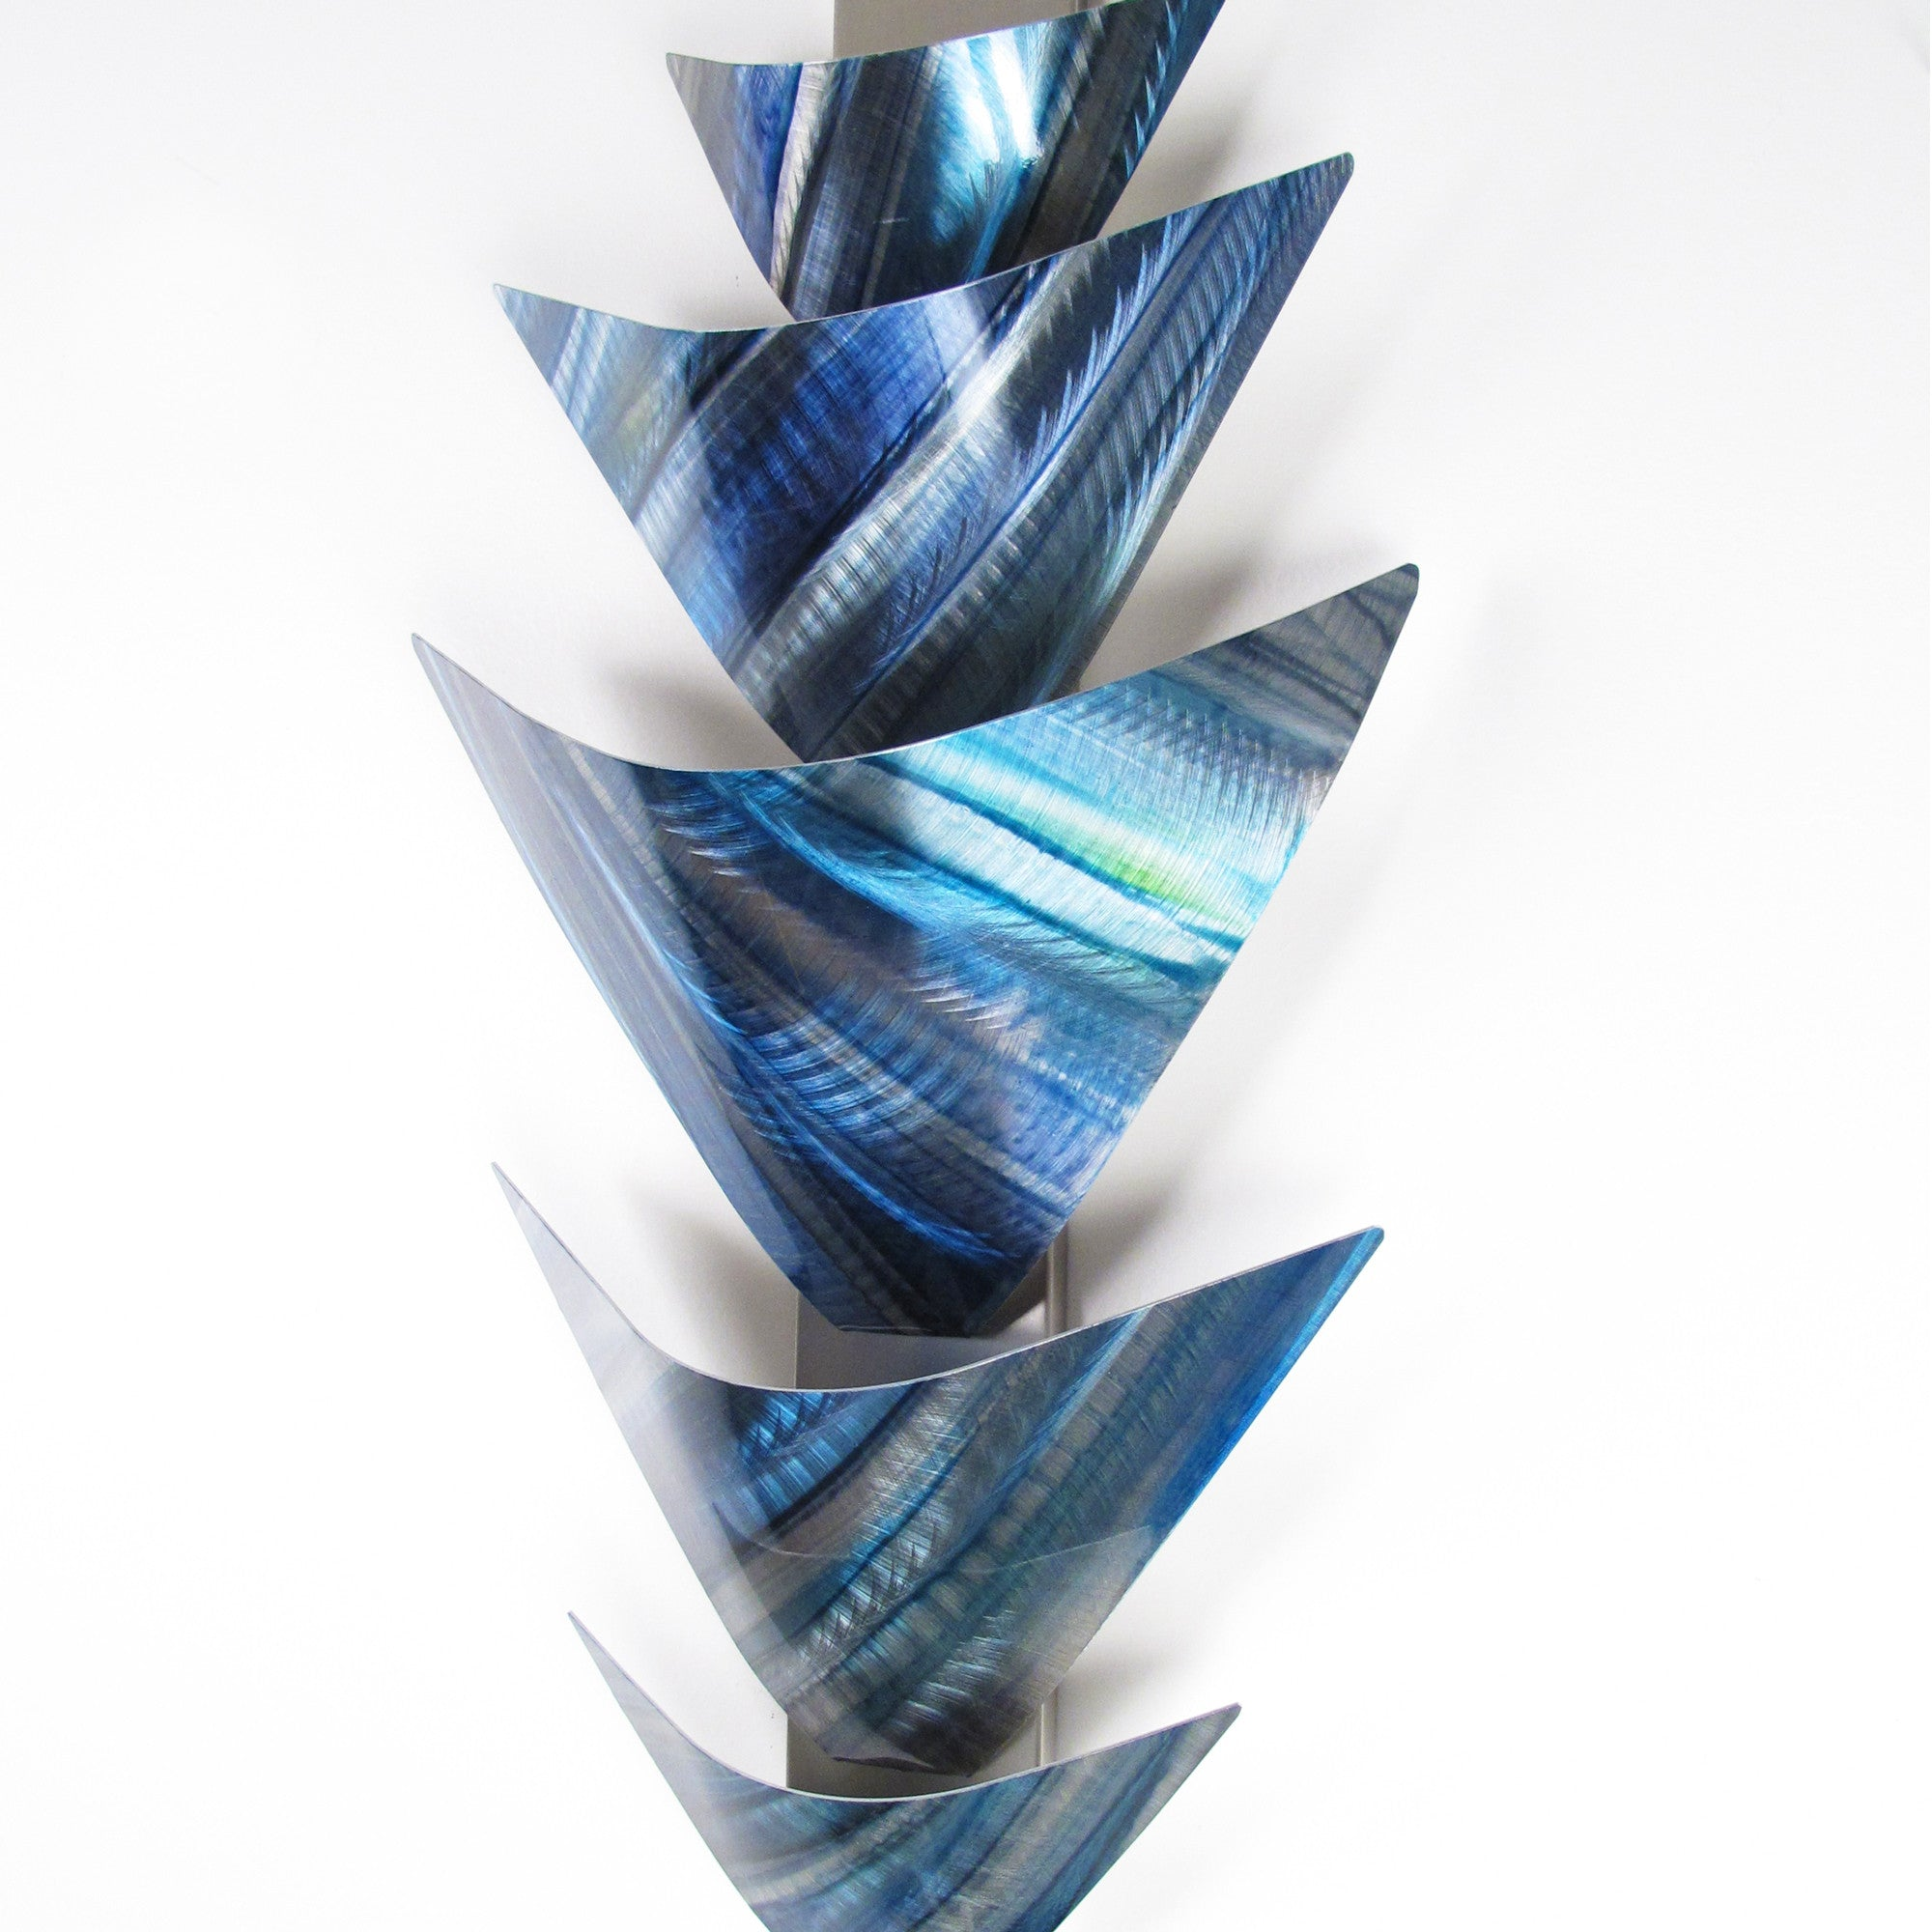 "Blue Metal Wall Art Enchanting Aurora Torchiere Series"" 40""x24"" Modern Abstract Metal Wall Art 2018"